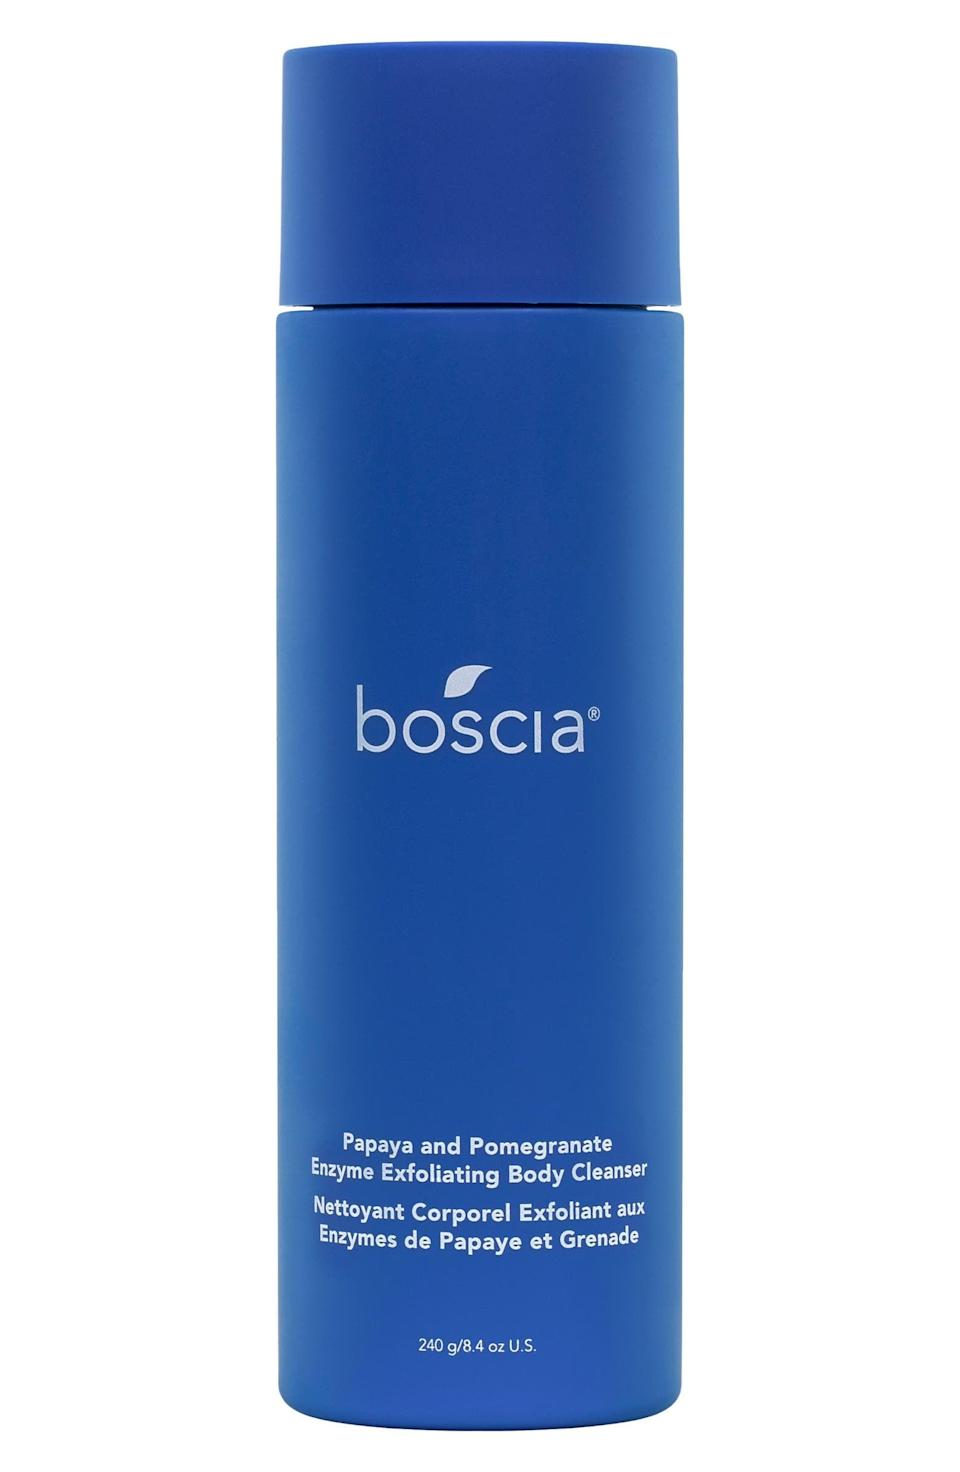 """<p>The <span>Boscia Papaya and Pomegranate Enzyme Exfoliating Body Cleanser</span> ($35) is a refreshing formula that's rich with AHAs like lactic acid and mandelic acid that help treat hyperpigmentation and uneven skin tone. It's also proven to be <a href=""""https://www.popsugar.com/beauty/boscia-papaya-pomegranate-body-cleanser-review-48209344"""" class=""""link rapid-noclick-resp"""" rel=""""nofollow noopener"""" target=""""_blank"""" data-ylk=""""slk:a great treatment for body acne"""">a great treatment for body acne</a>.</p>"""